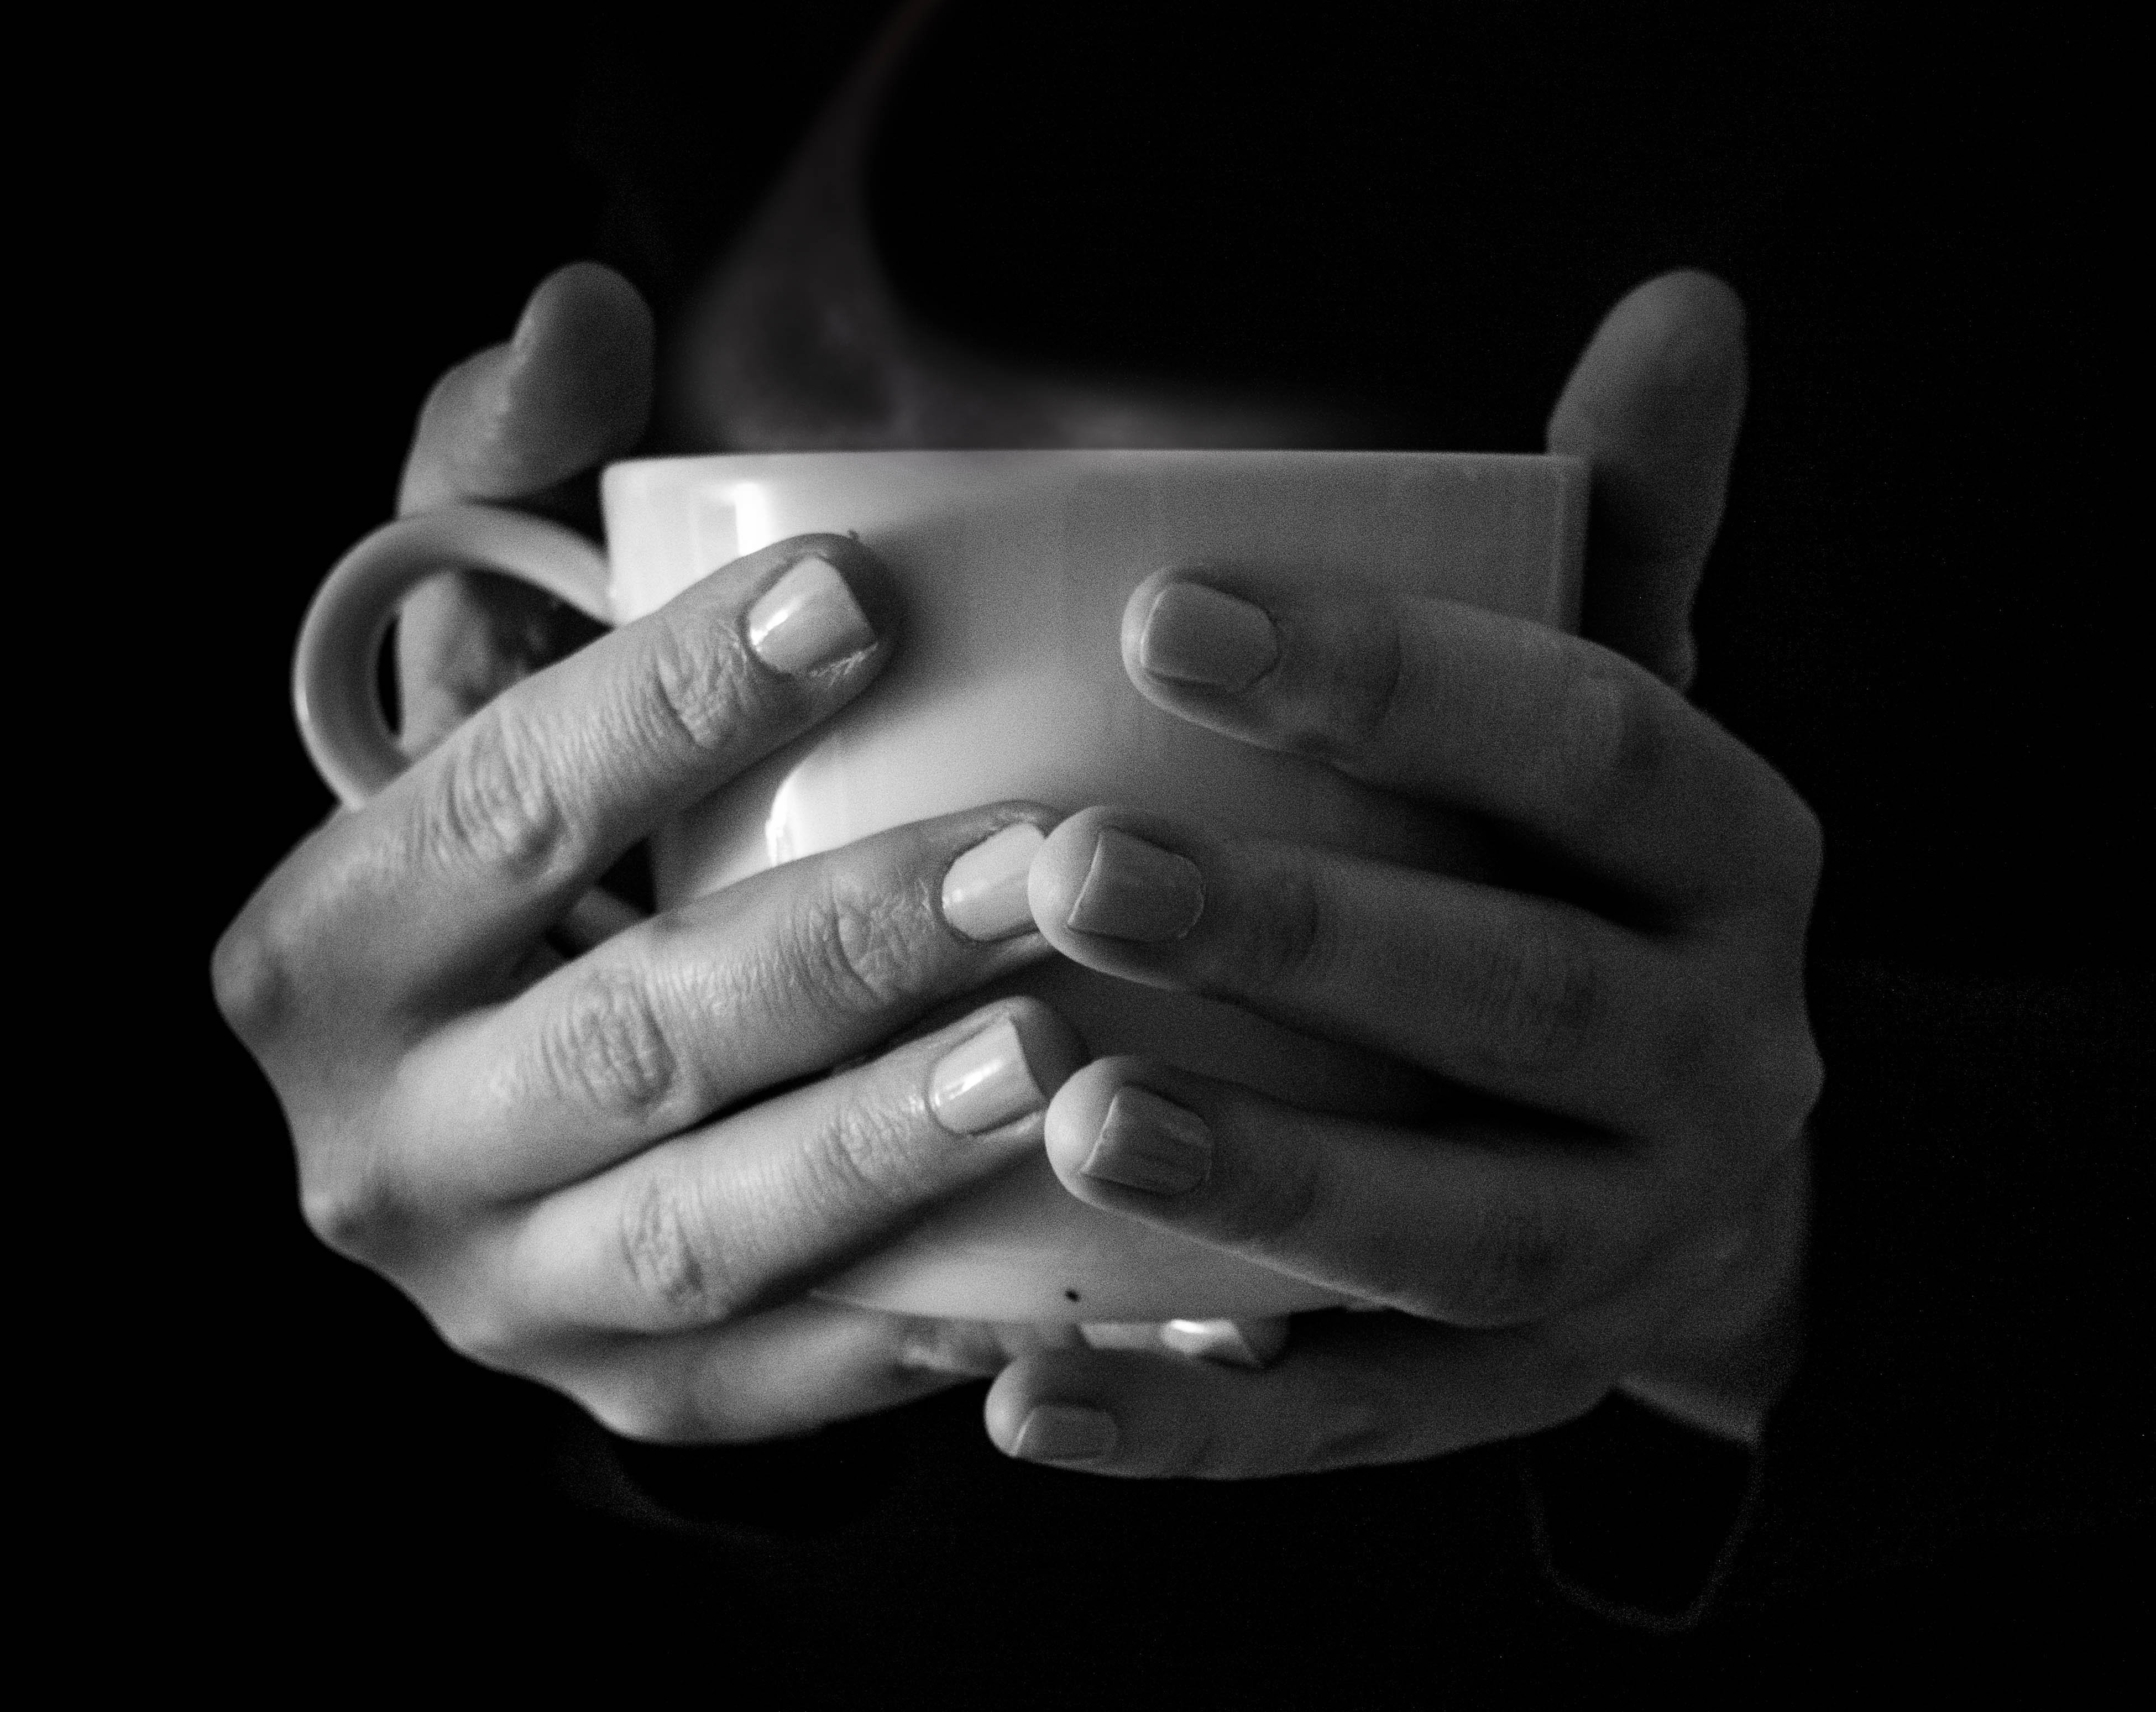 Hands holding a cup of tea